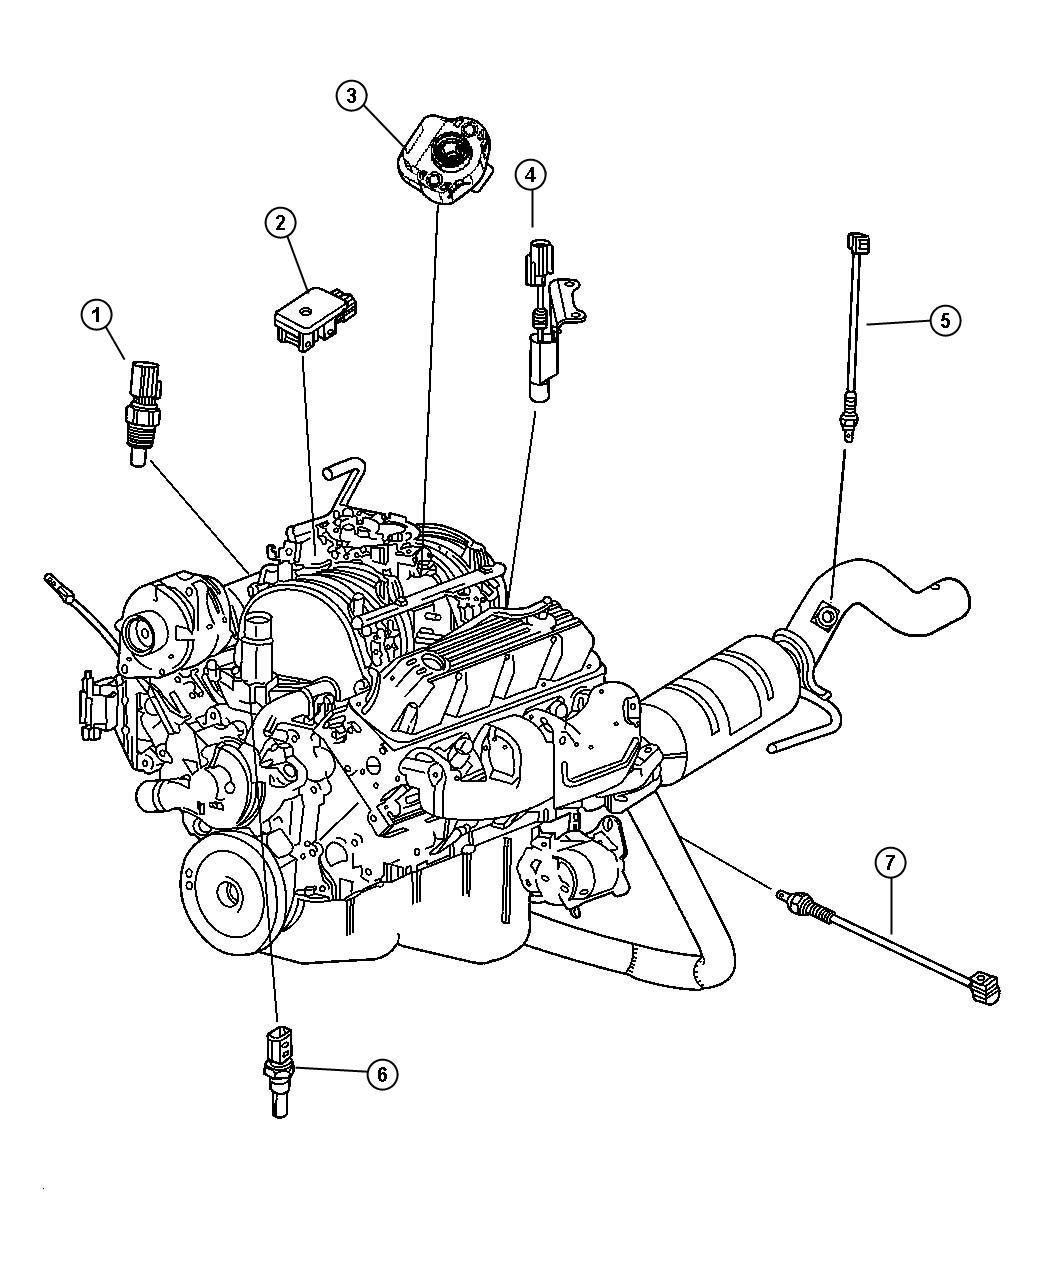 Outstanding 97 dodge ram wiring schematic ideas electrical system